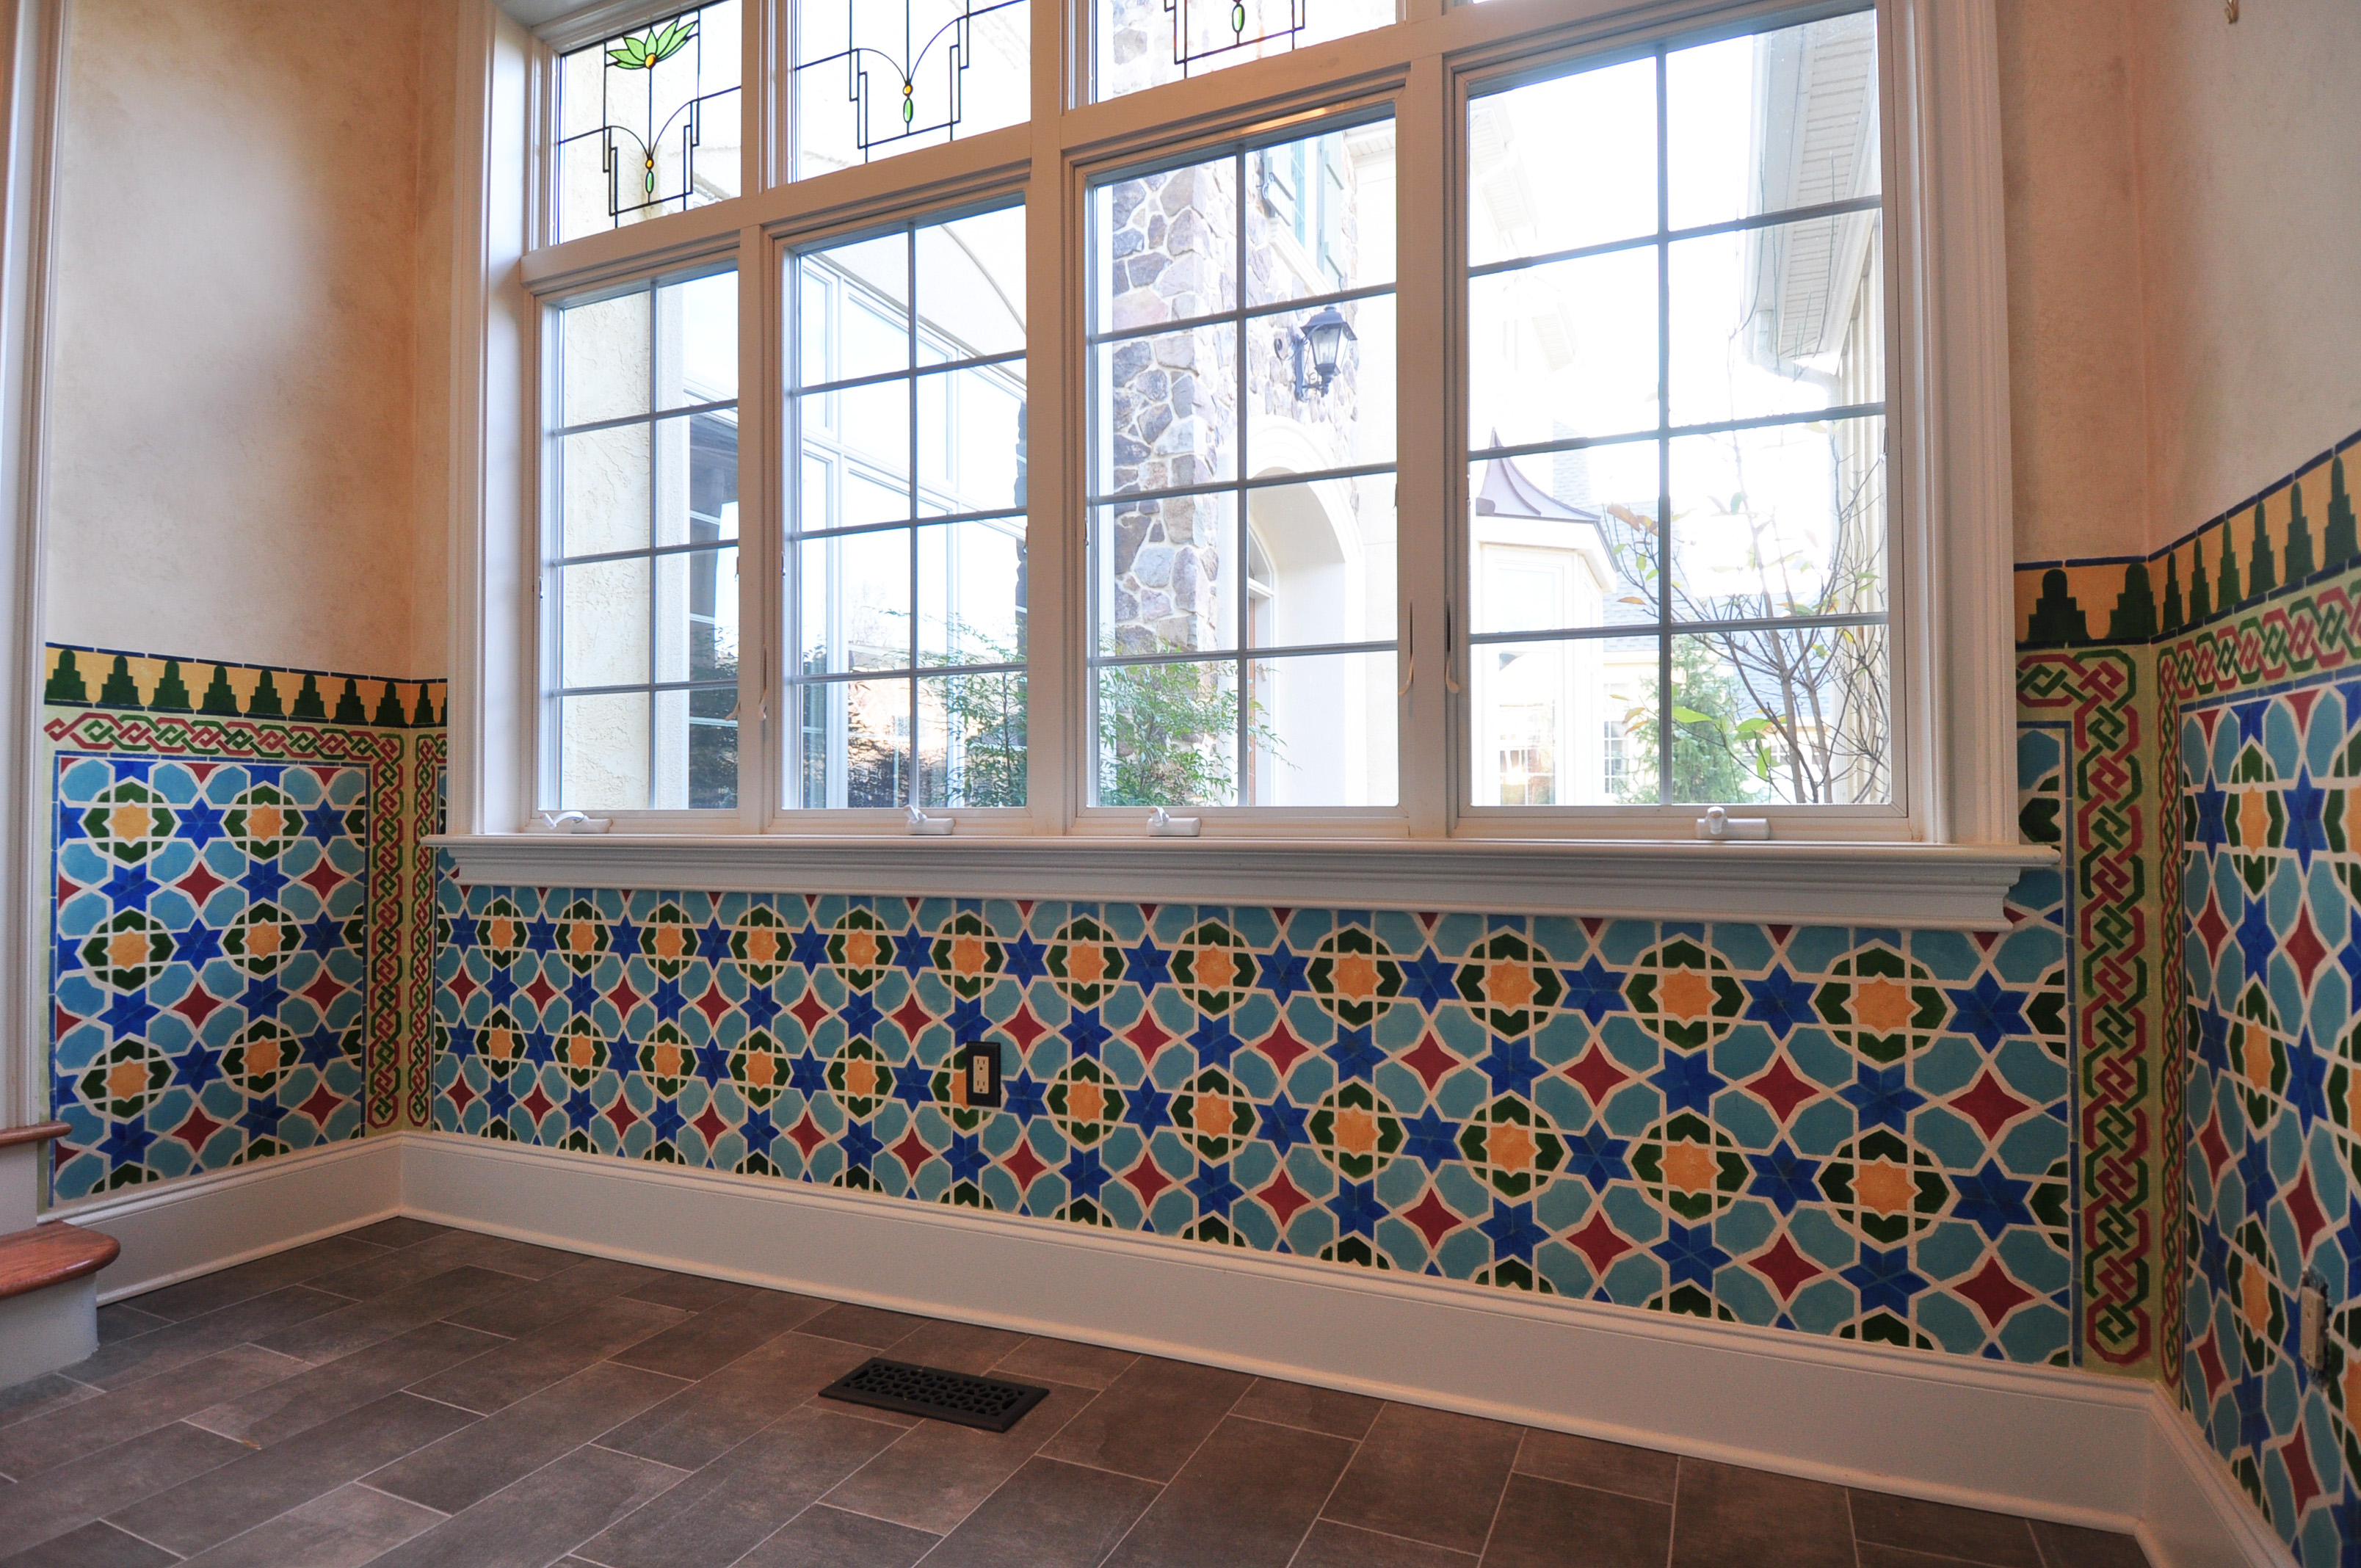 Tile under window.jpg